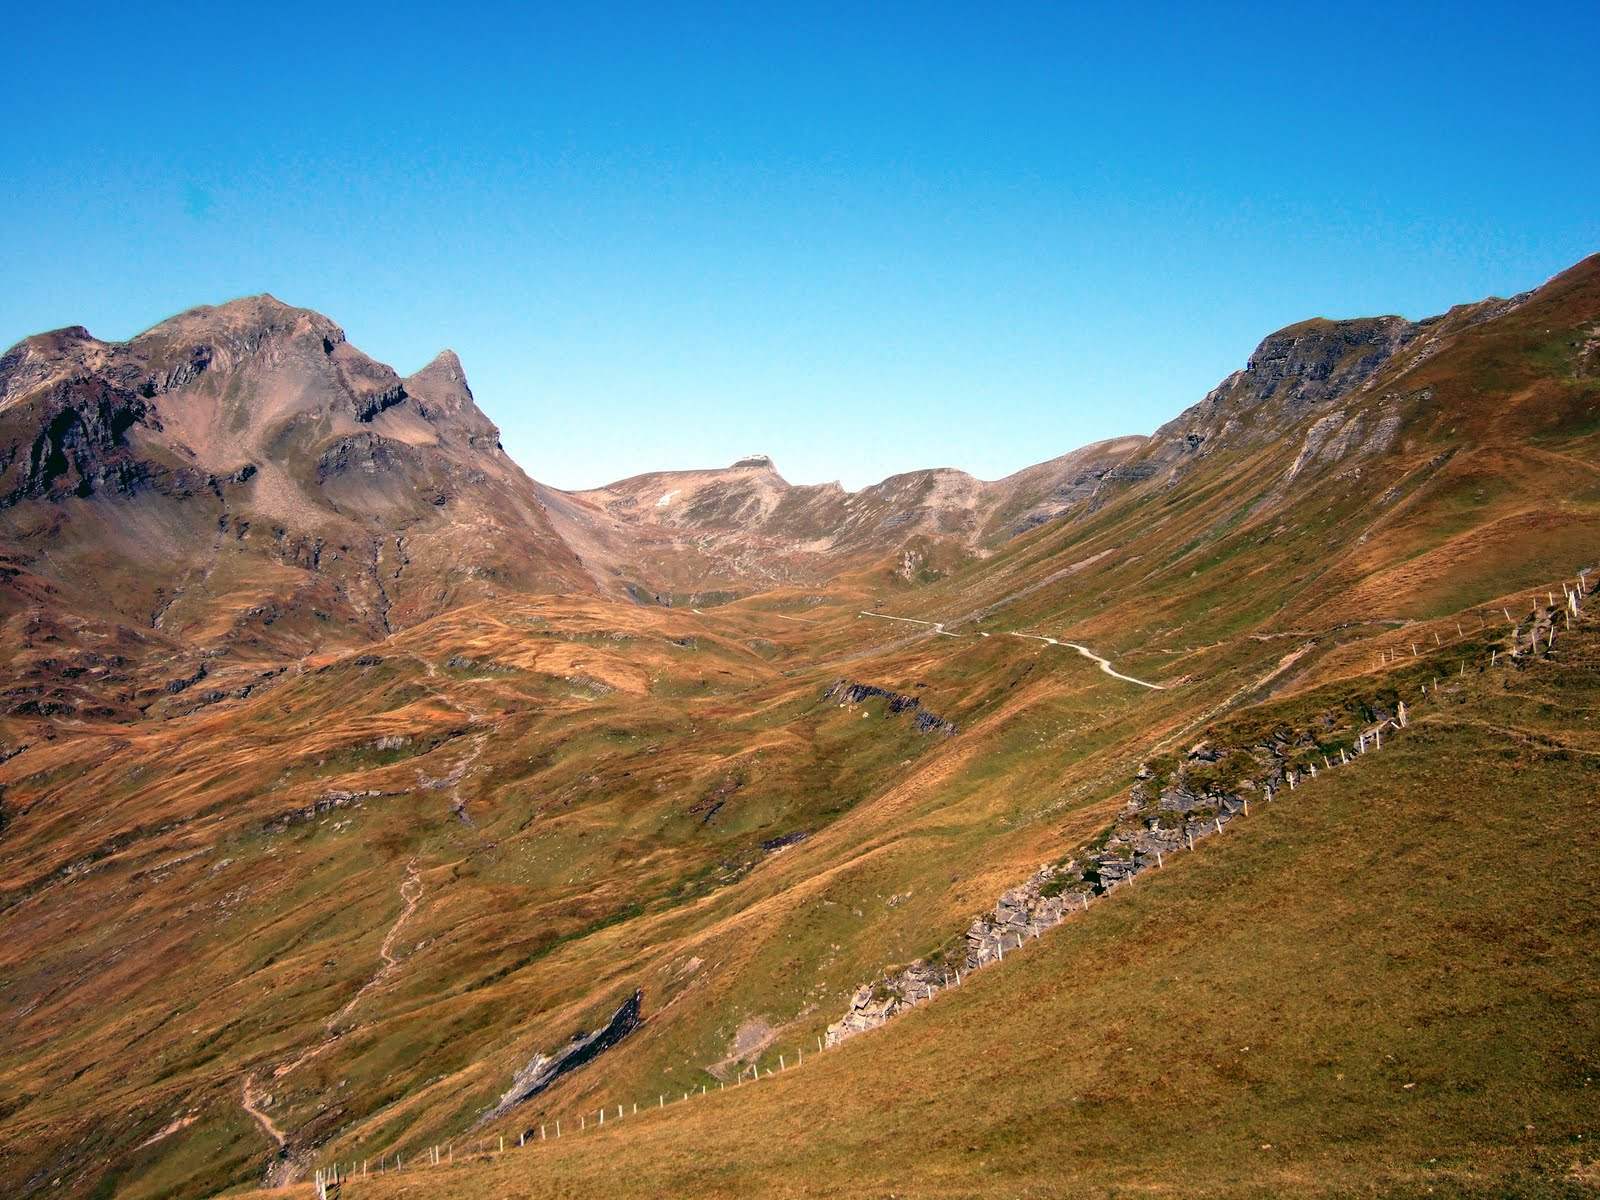 Alpine Trails: The Faulhorn from Grindelwald